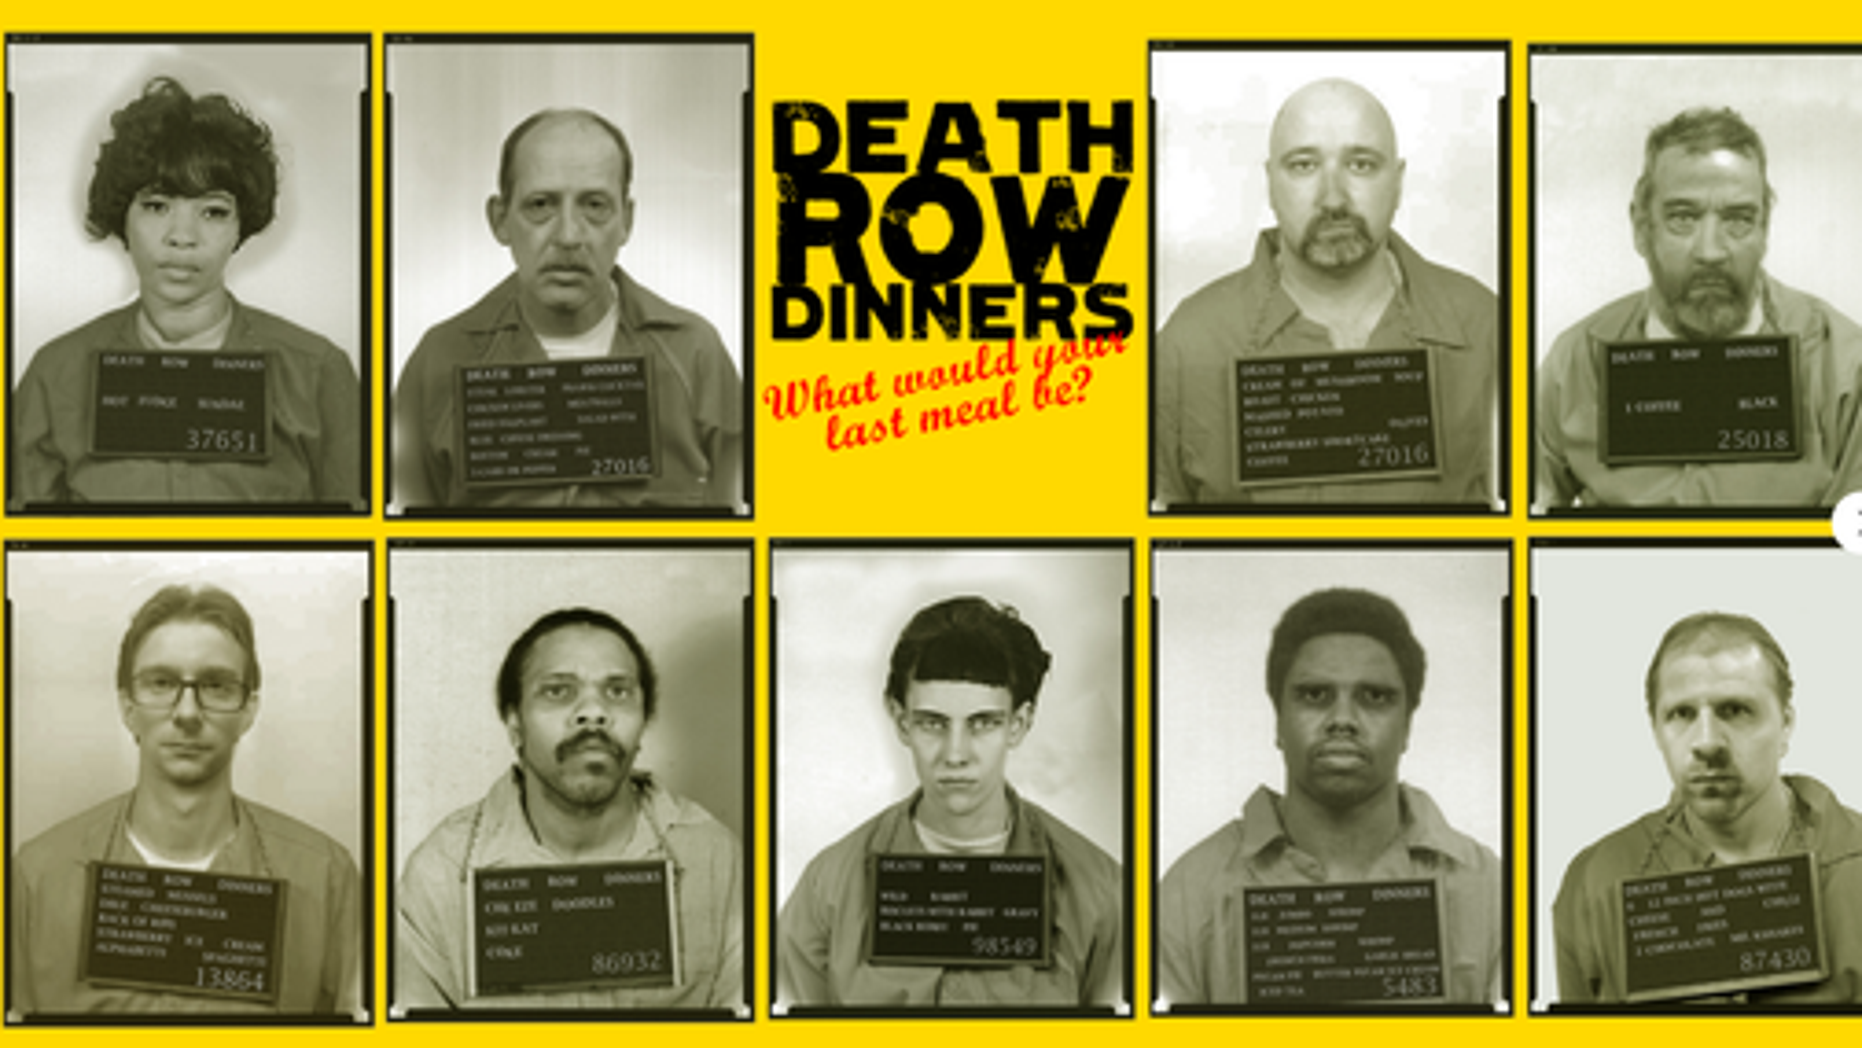 Mugshots were used to promote a last meal pop-up restaurant concept in Britain.